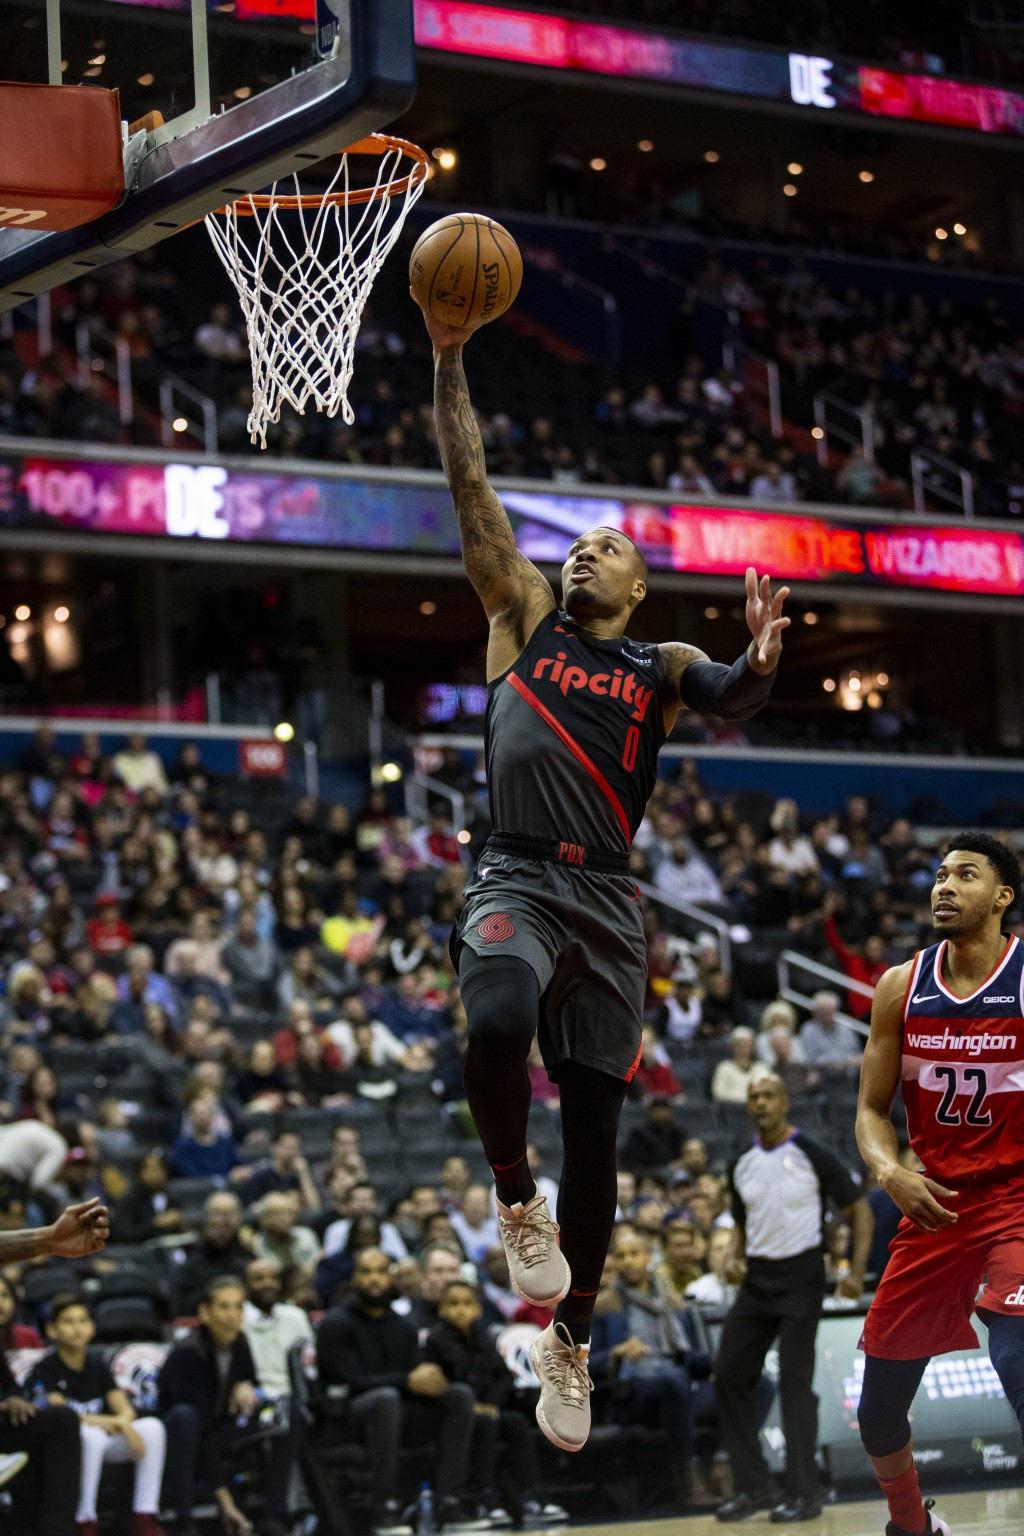 Portland Trail Blazers guard Damian Lillard (0) makes a layup past Washington Wizards forward Otto Porter Jr. (22) during the first half of an NBA bas